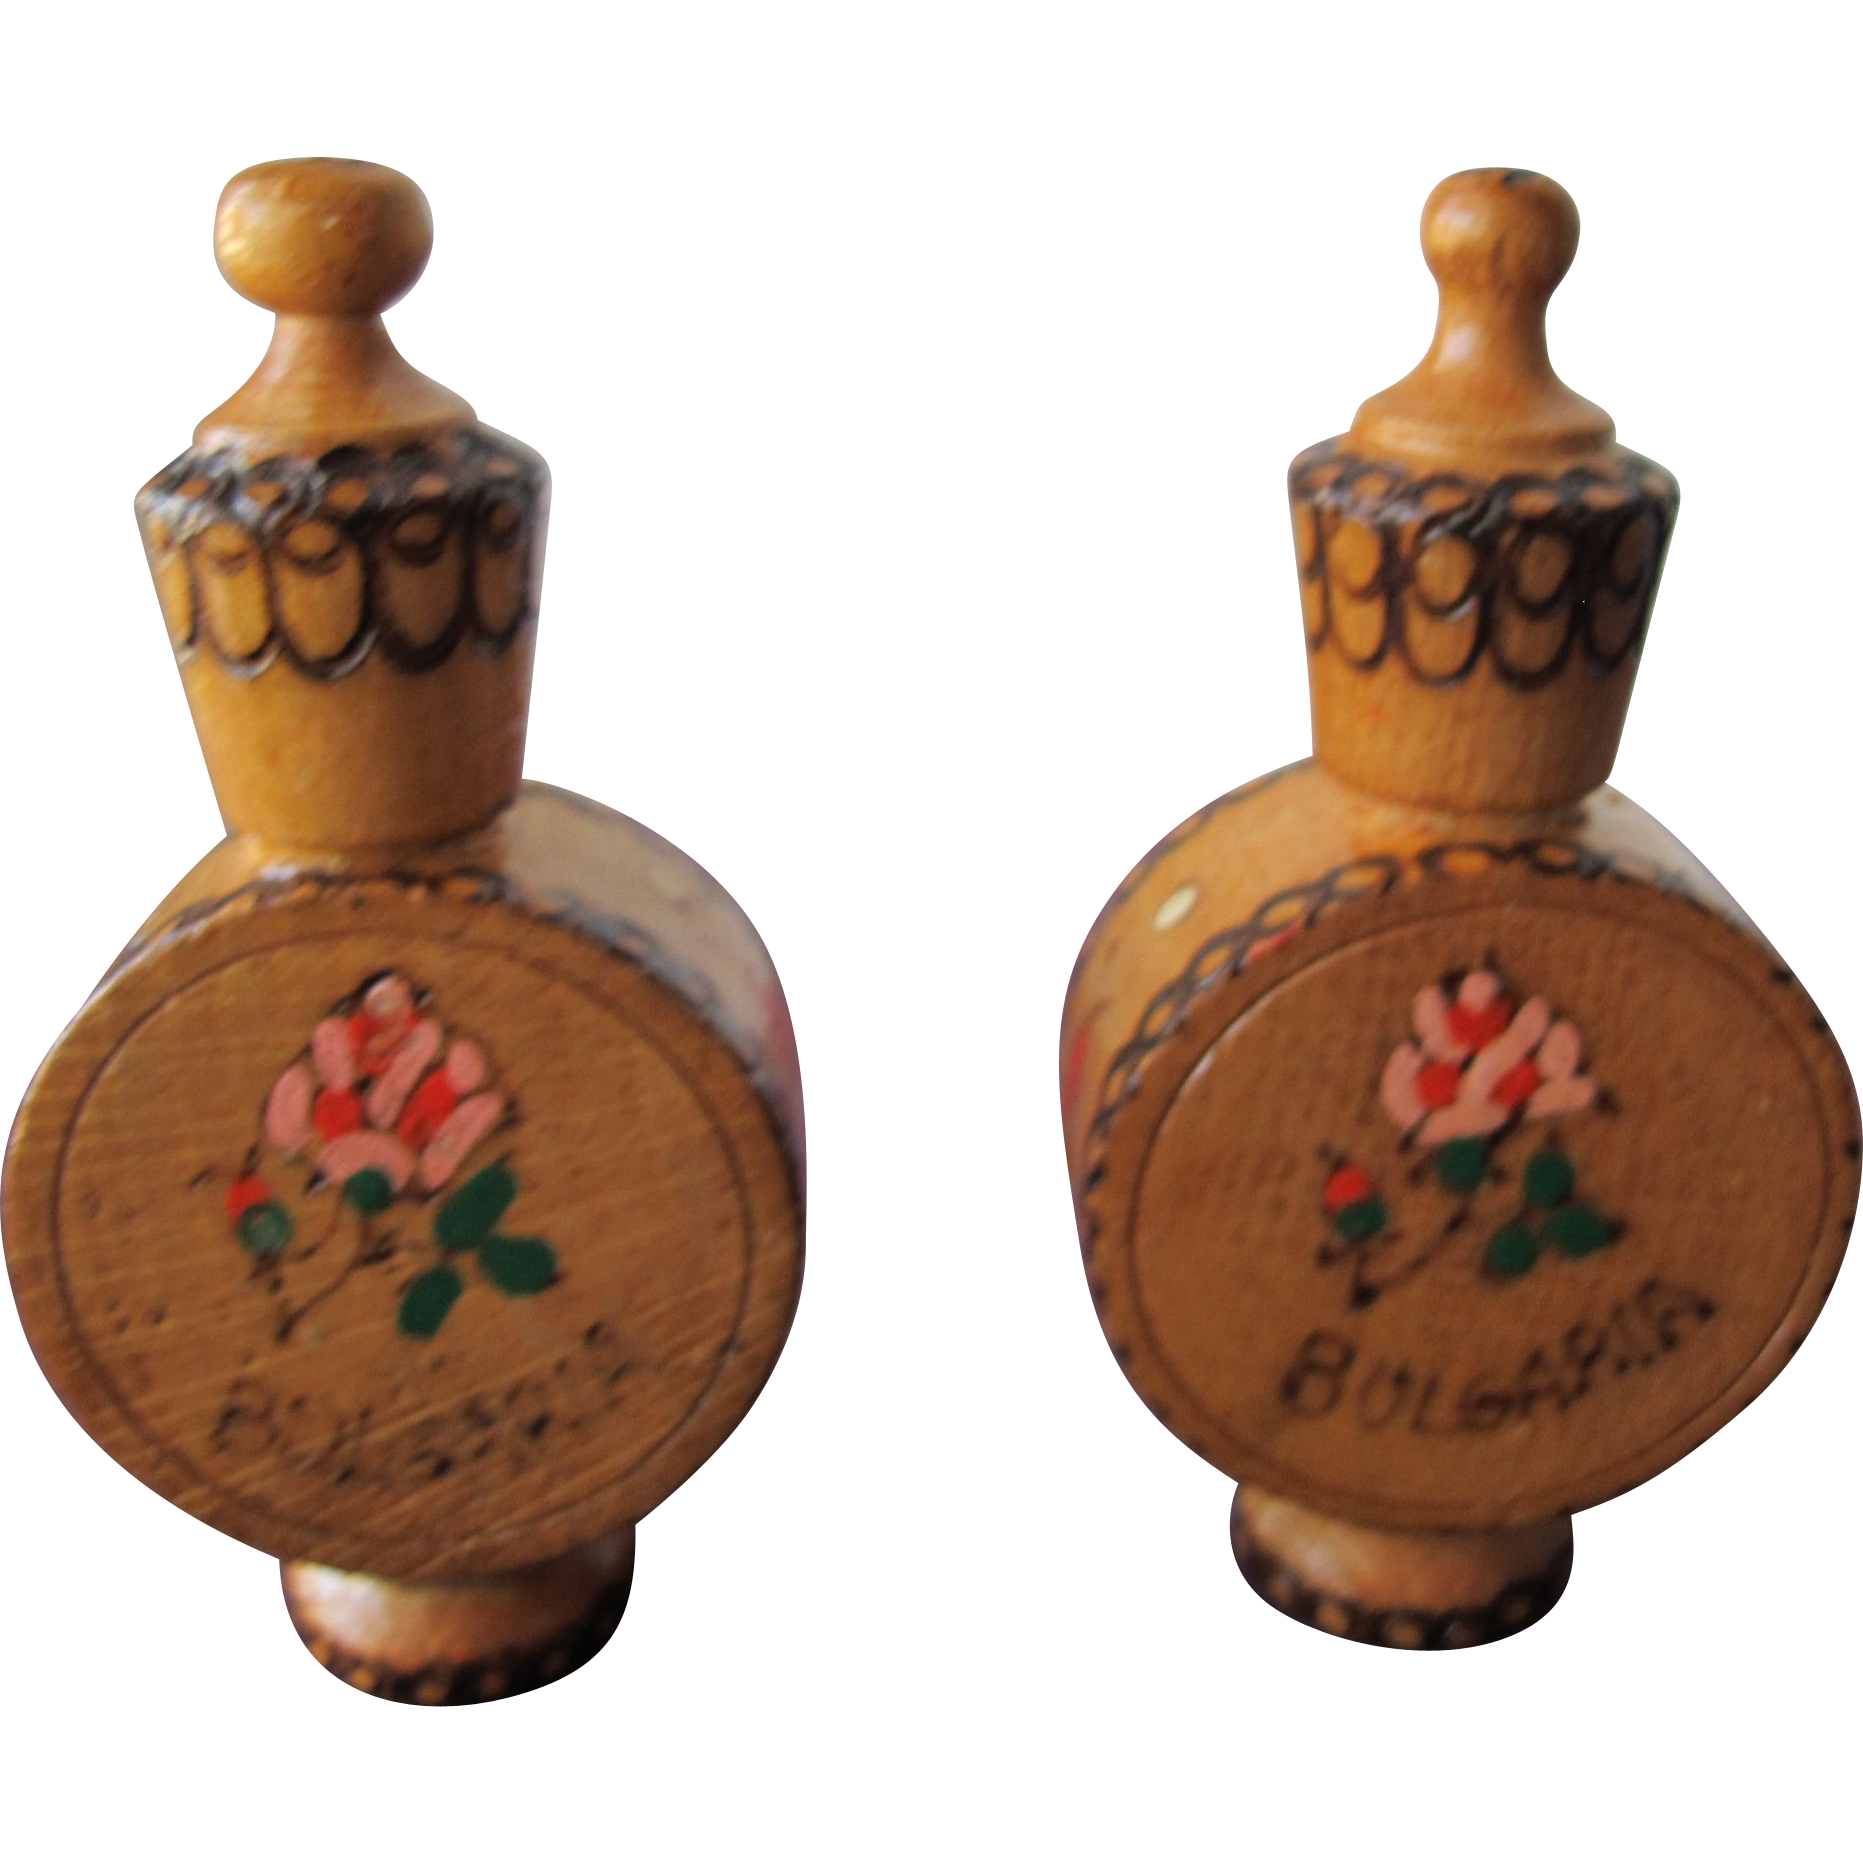 Two Perfume Bottles Wood Containers Holding Rose Oil From Bulgaria